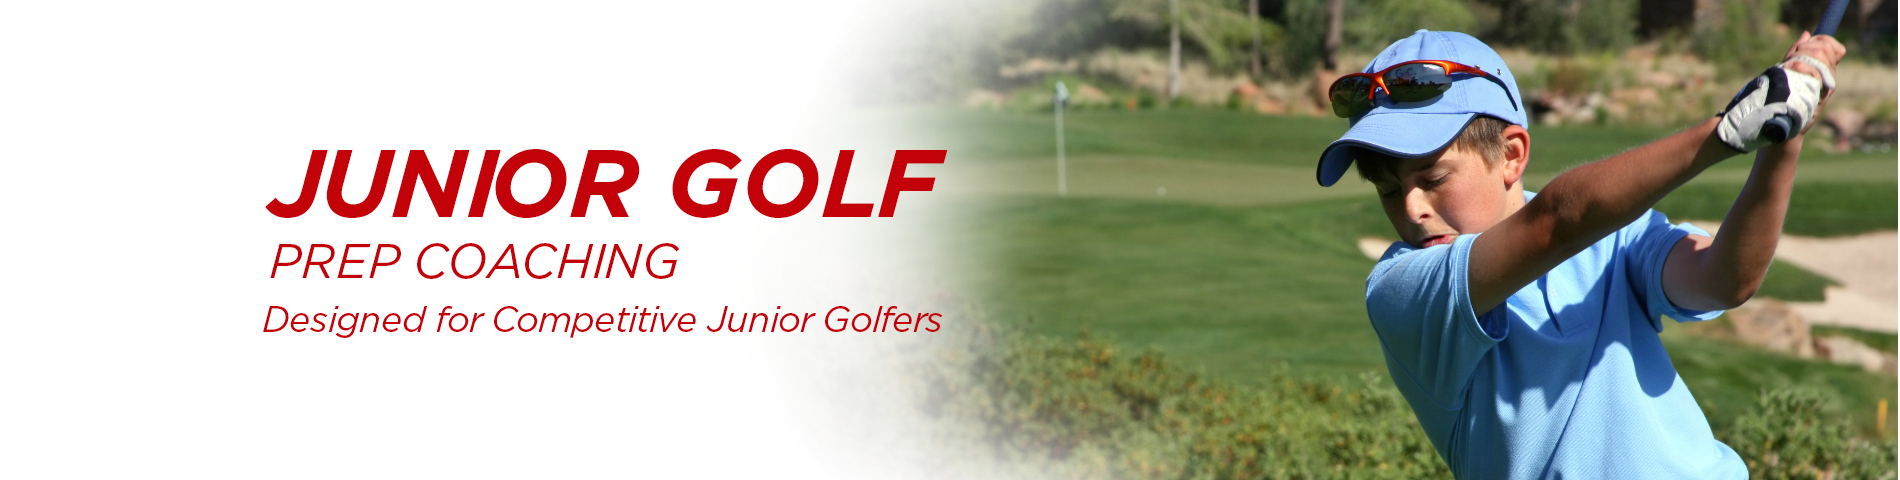 Junior Golf Prep